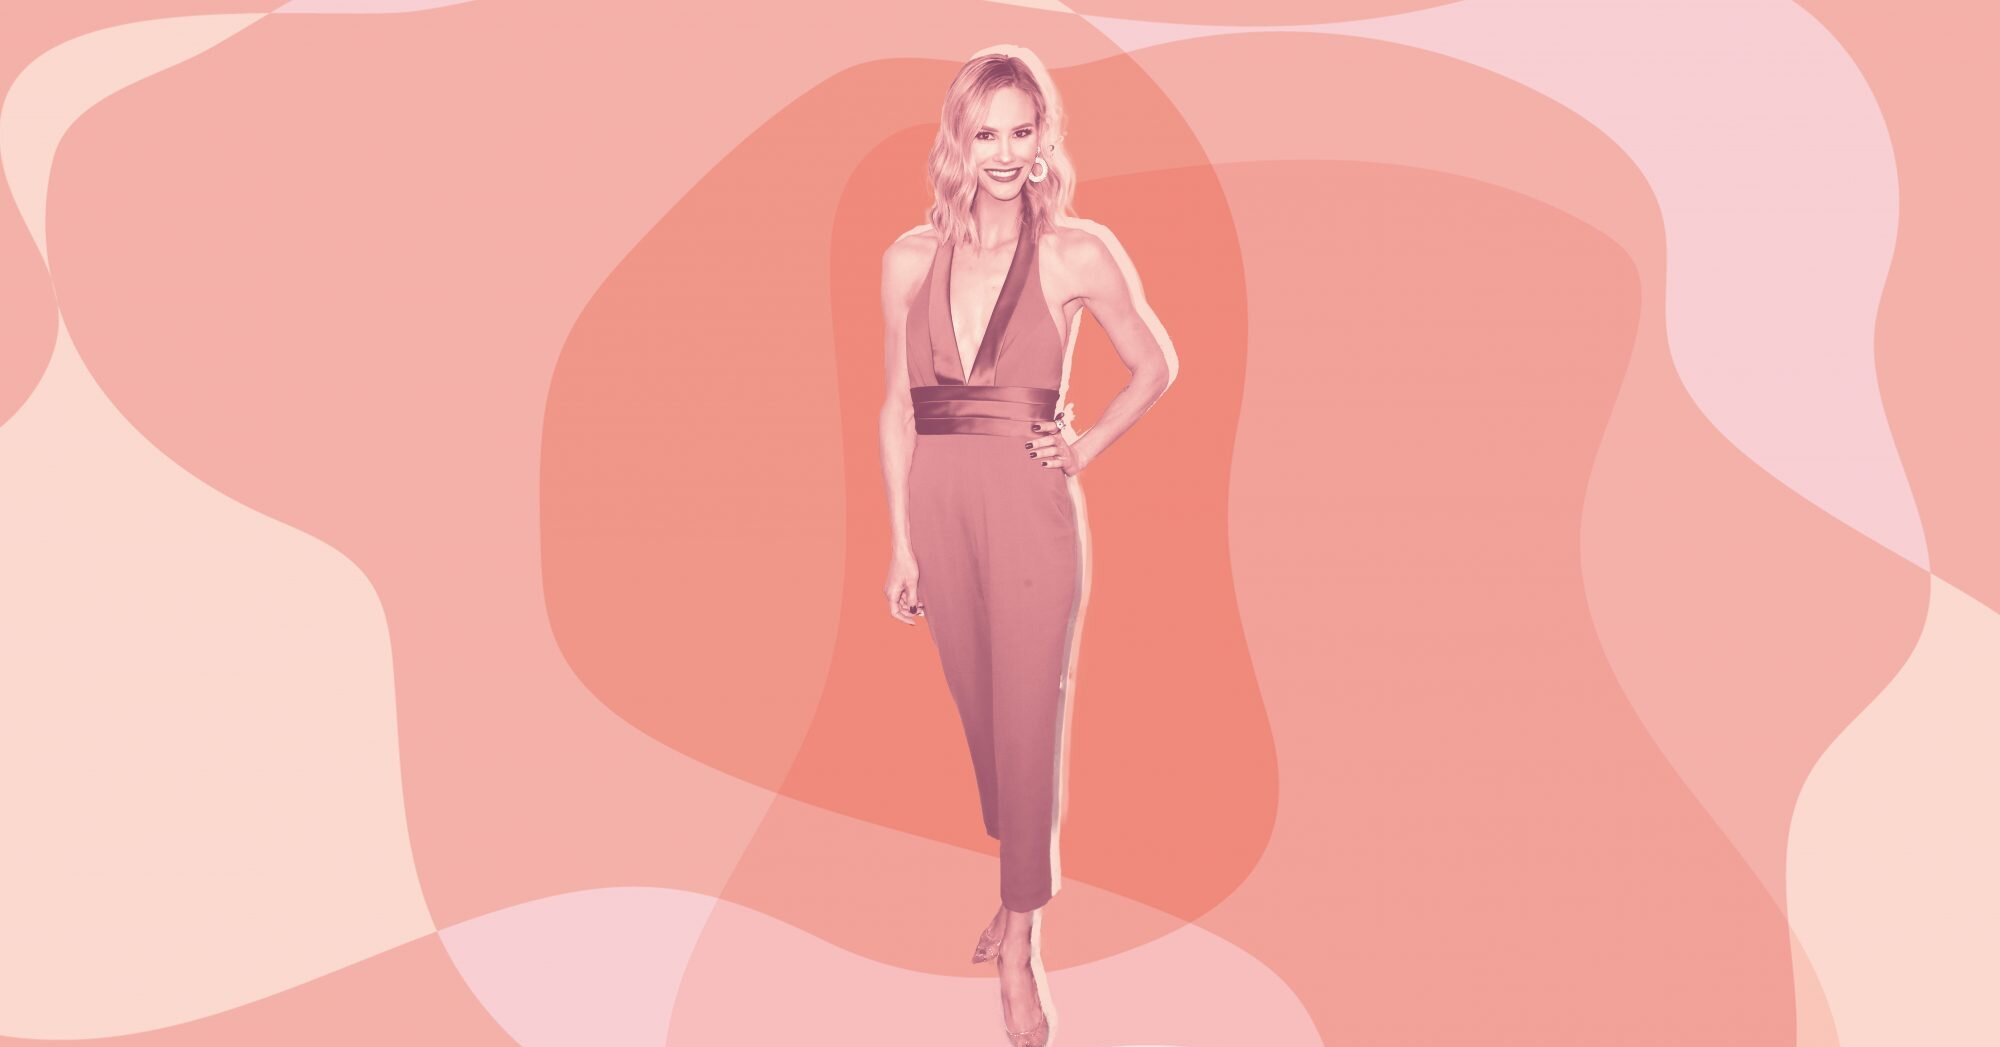 Meghan King Edmonds Responds to Concern Over Her 'Too Thin' Appearance: 'I'm a Stress Non-Eater'